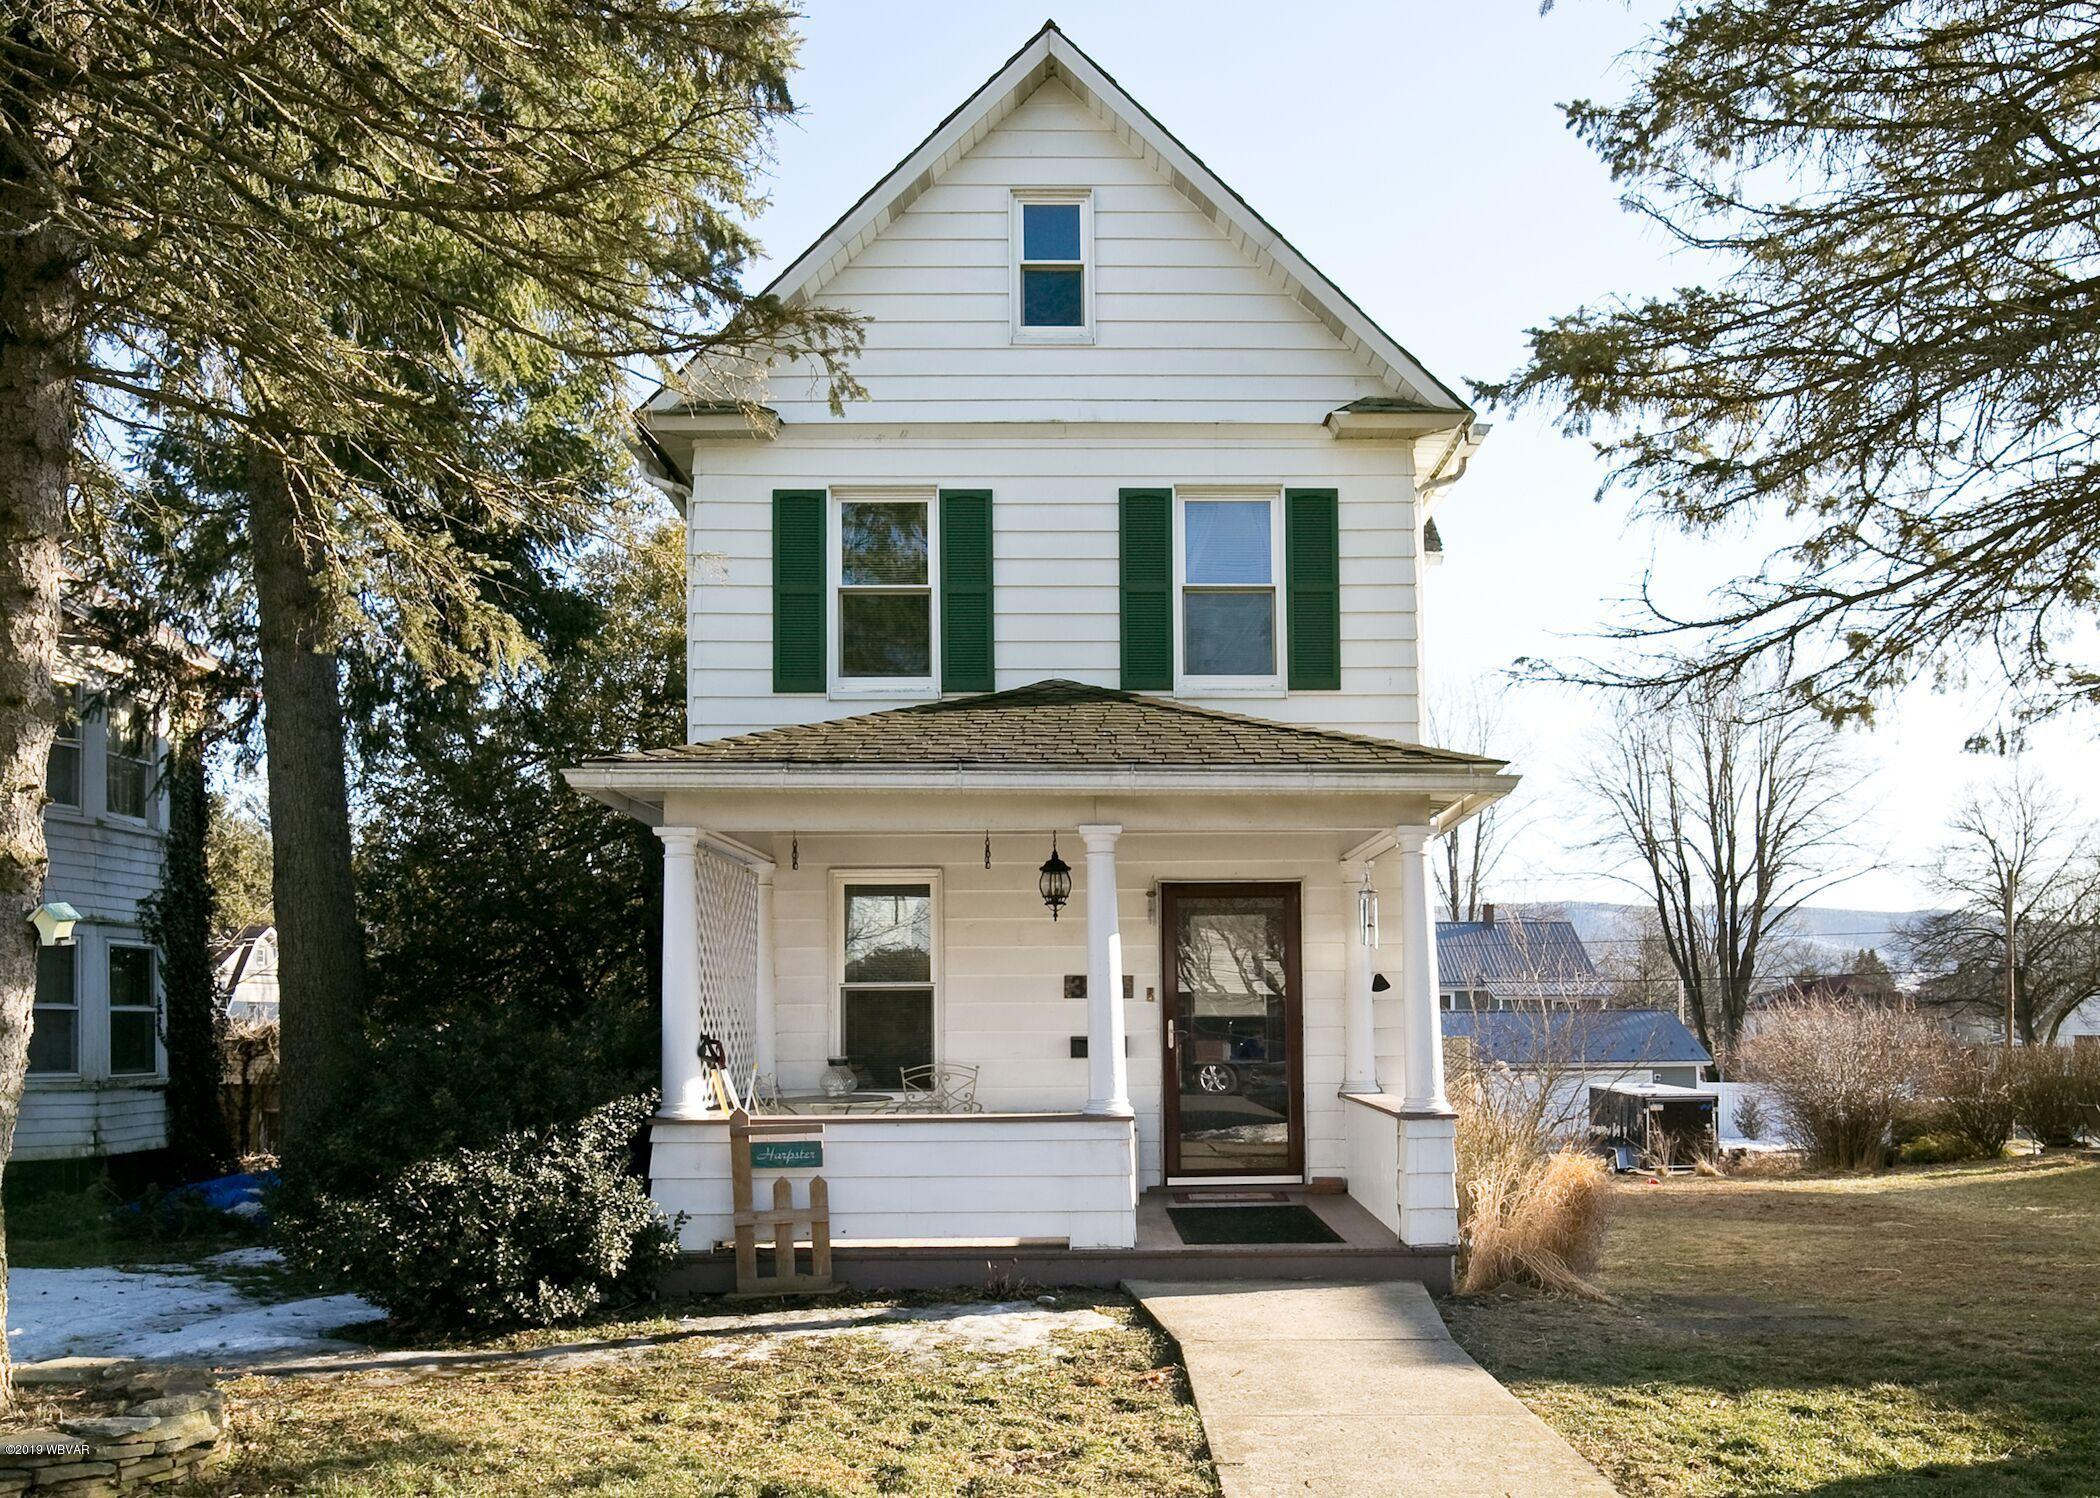 304 WOODLAND AVENUE,Williamsport,PA 17701,3 Bedrooms Bedrooms,2 BathroomsBathrooms,Residential,WOODLAND,WB-86631